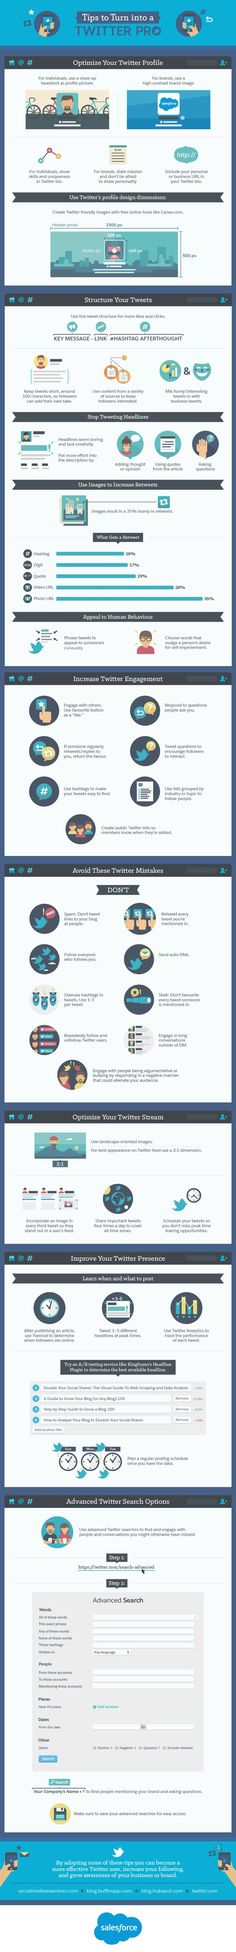 Twitter is a great tool for marketing, but are you getting the most out of your profile? This infographic (produced by Salesforce) will teach you key ways to optimize your Twitter profile (both for individuals and for brands), best practices for tweet structure, and how to increase engagement.